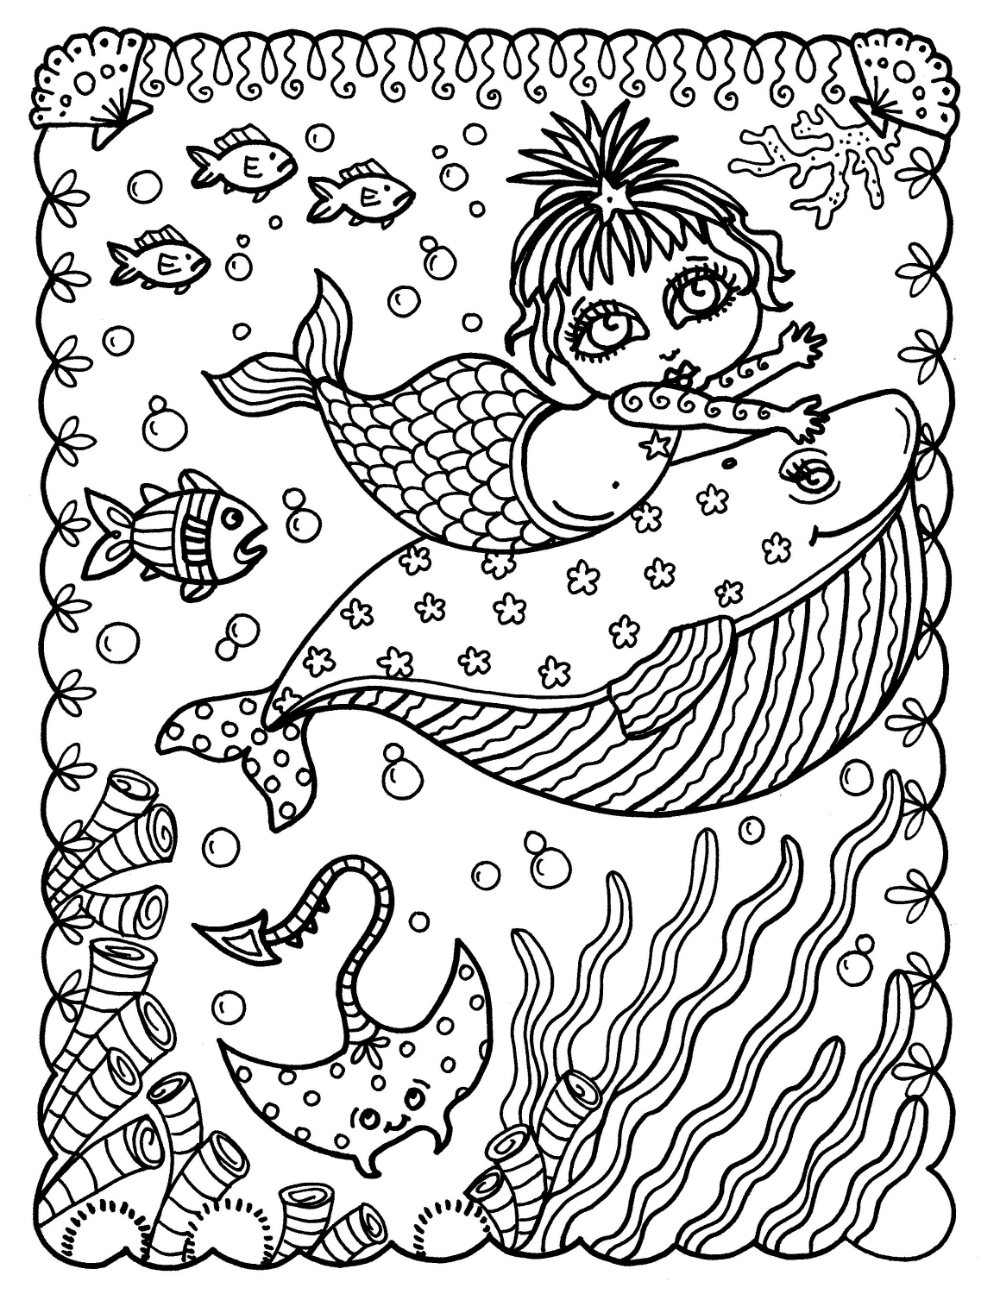 Baby Mermaids Digital Coloring Book For All Mermaid Lovers Etsy Coloring Books Love Coloring Pages Fairy Coloring Pages